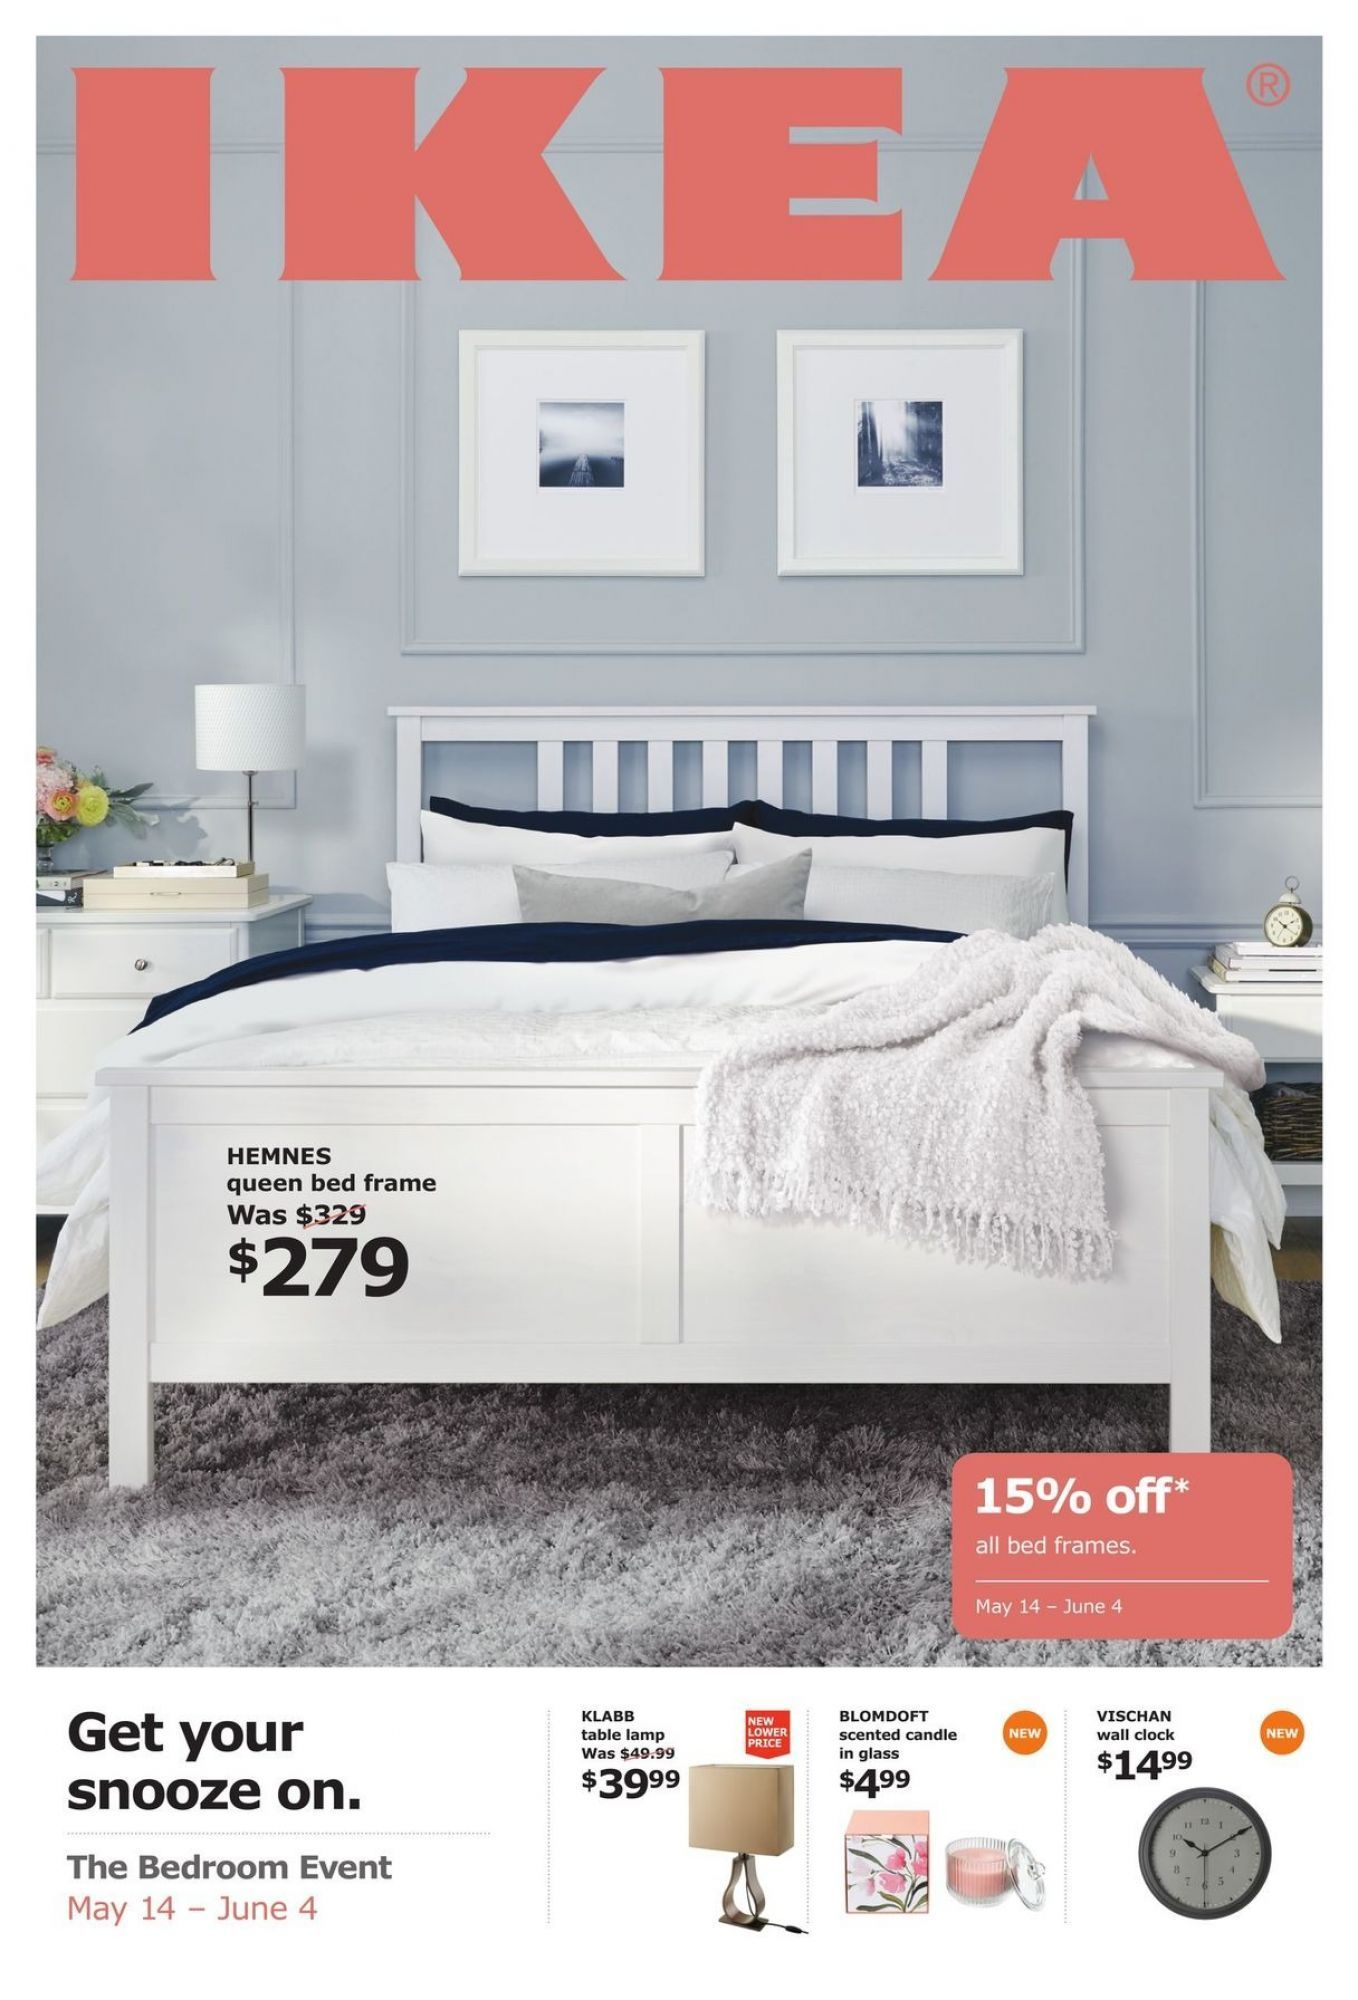 Bedroom Event Ikea 4 in 4  Celebrity bedrooms, Ikea, Master